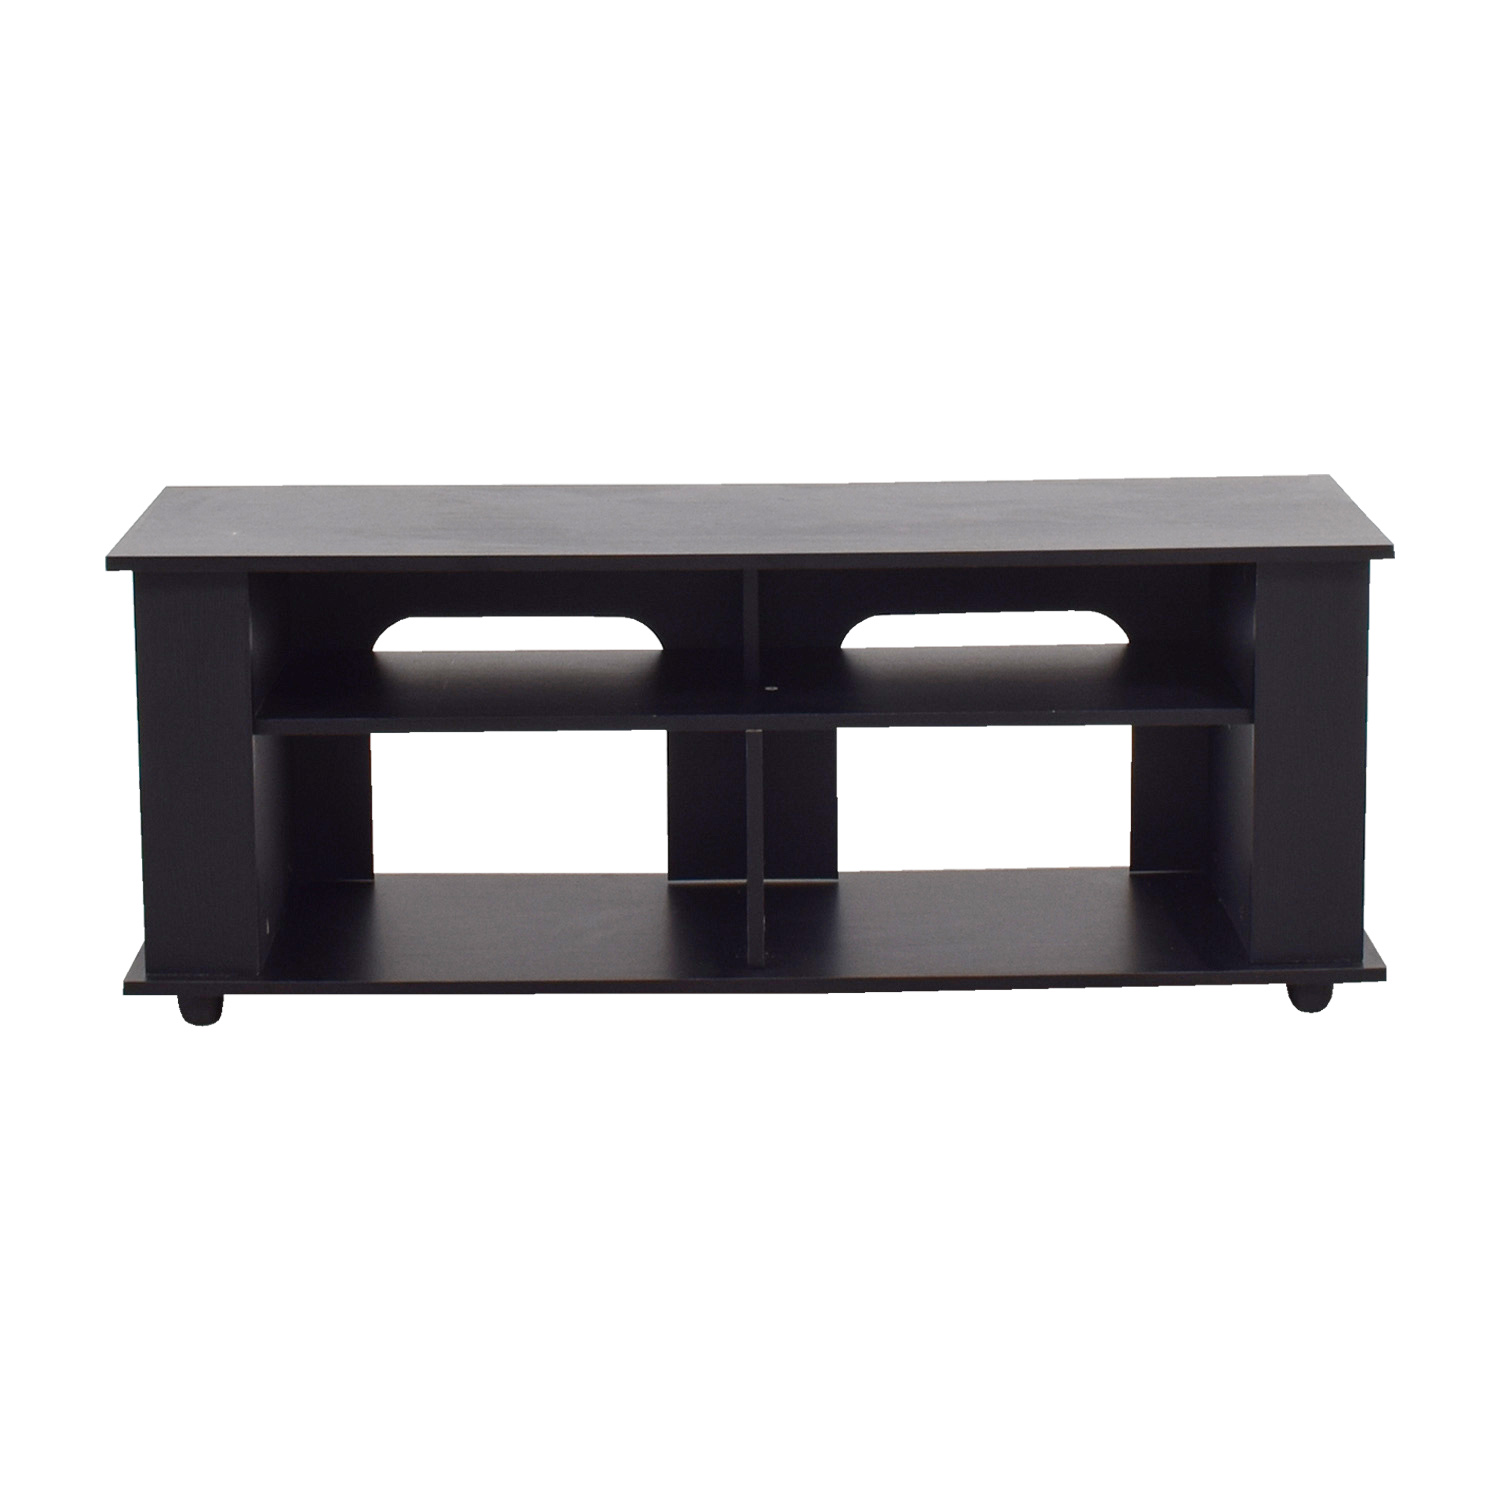 Best Buy Best Buy Bakersfield Ravenswood Entertainment Stand price